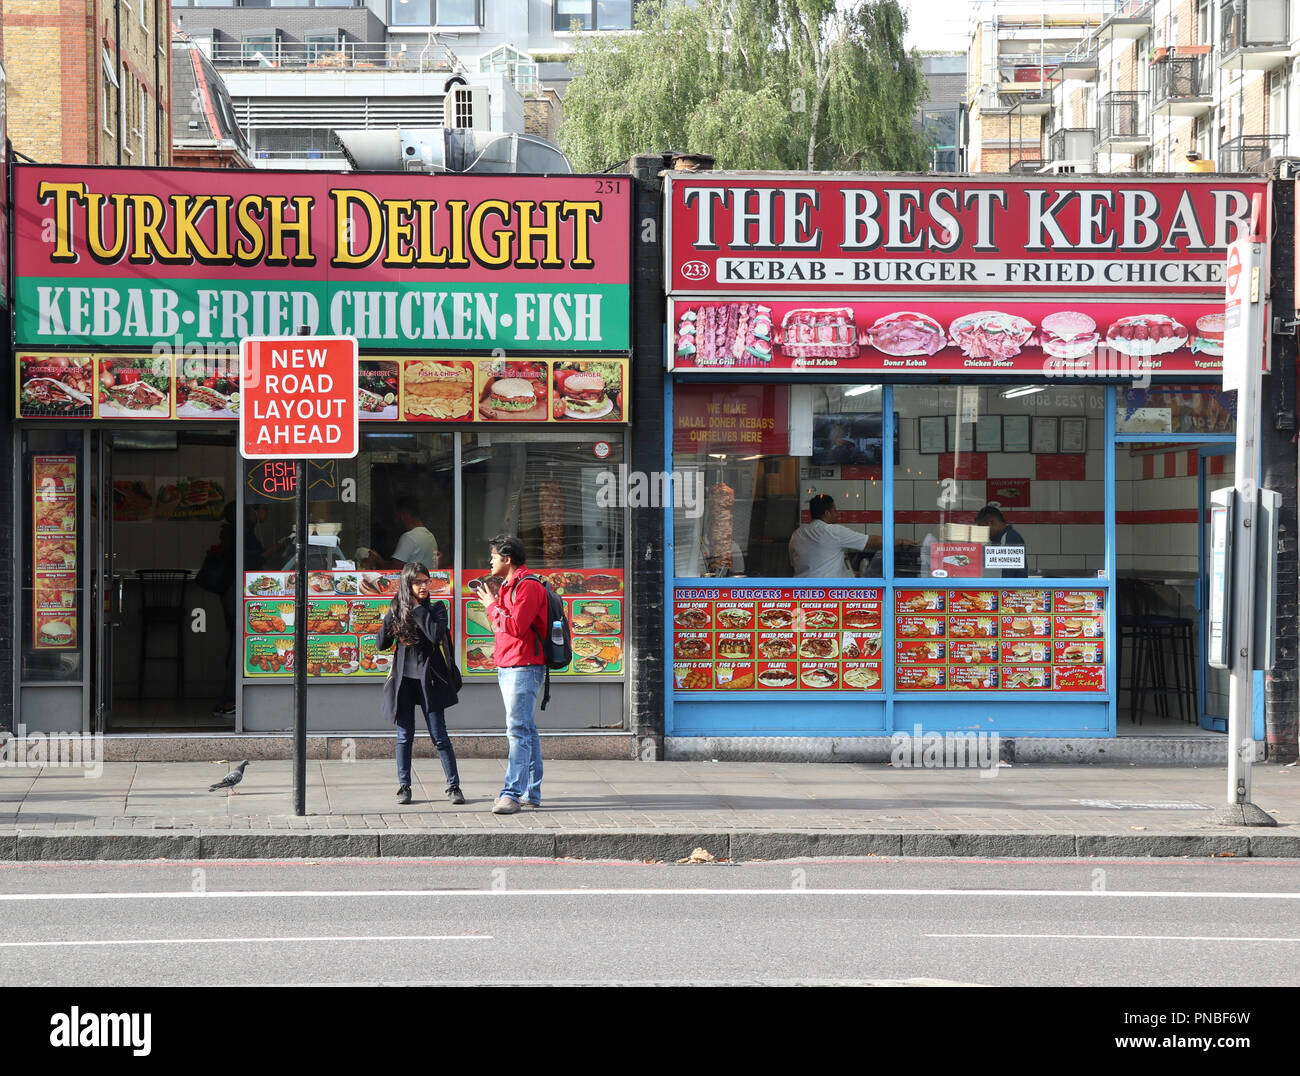 Turkish Delight and The Best Kebab fast food restaurants, Old Street, Shoreditch, London, England, UK Stock Photo